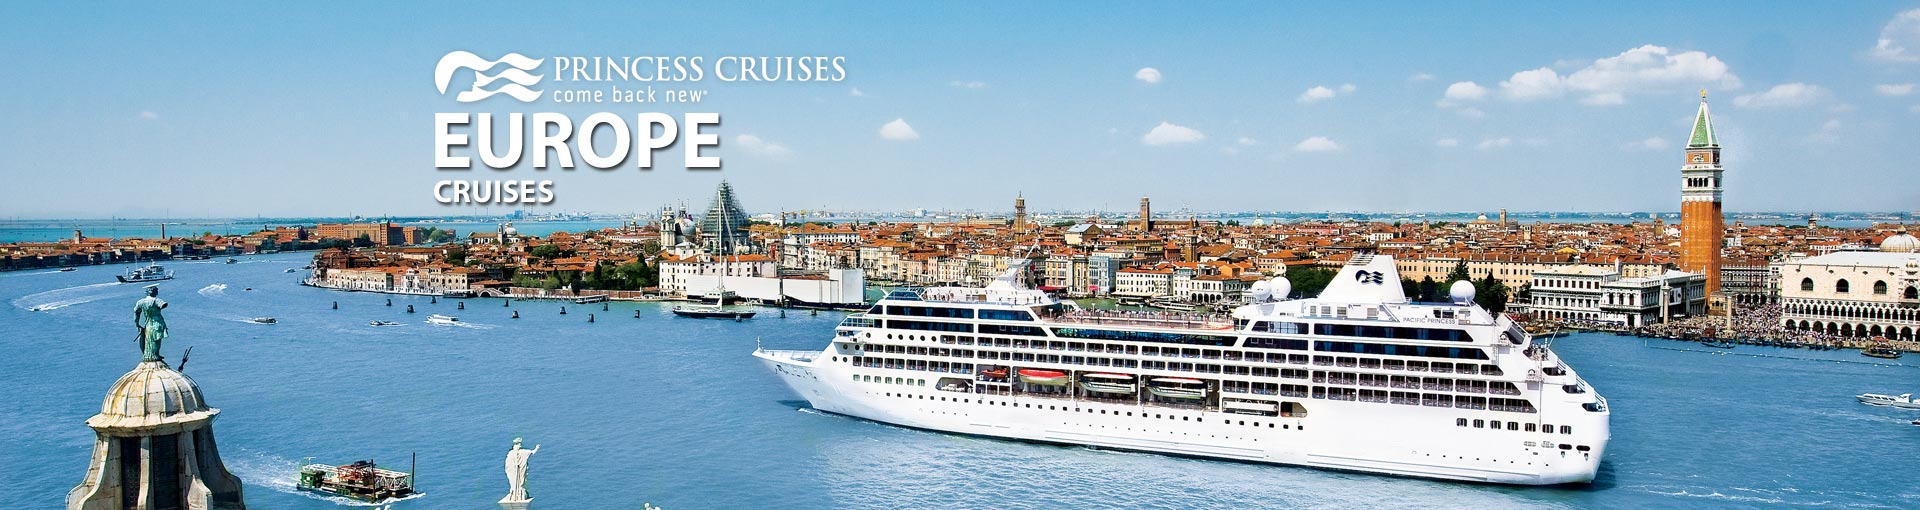 Princess Europe Cruises